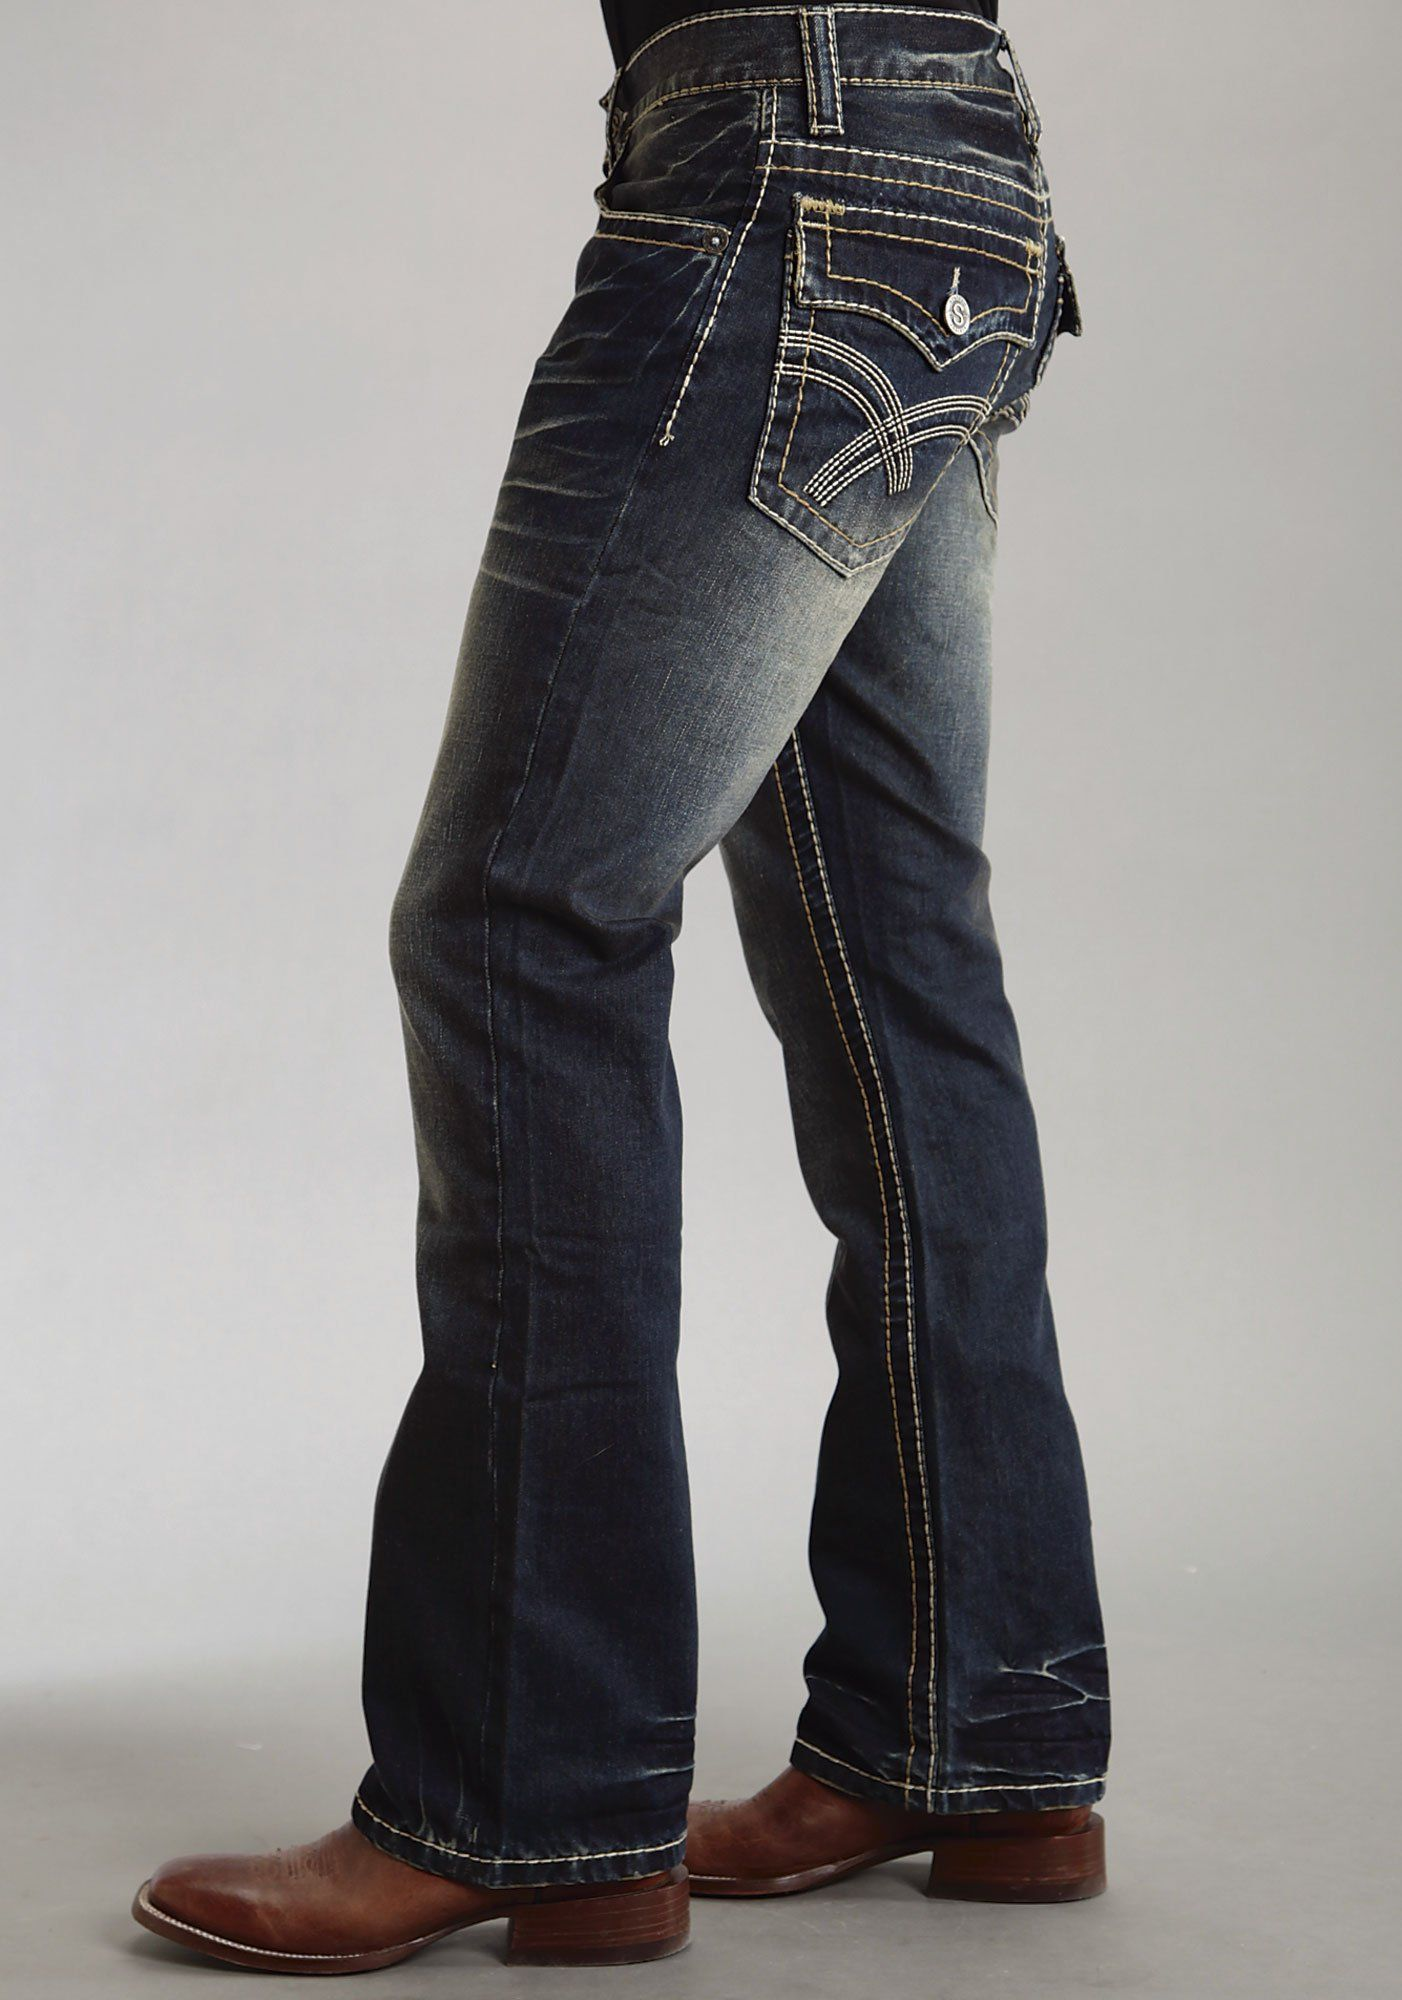 9b2d15633c4 For high quality, traditional, western apparel with lasting style, look no  further than Stetson. These classic cotton blend mens jeans feature a lower  rise ...